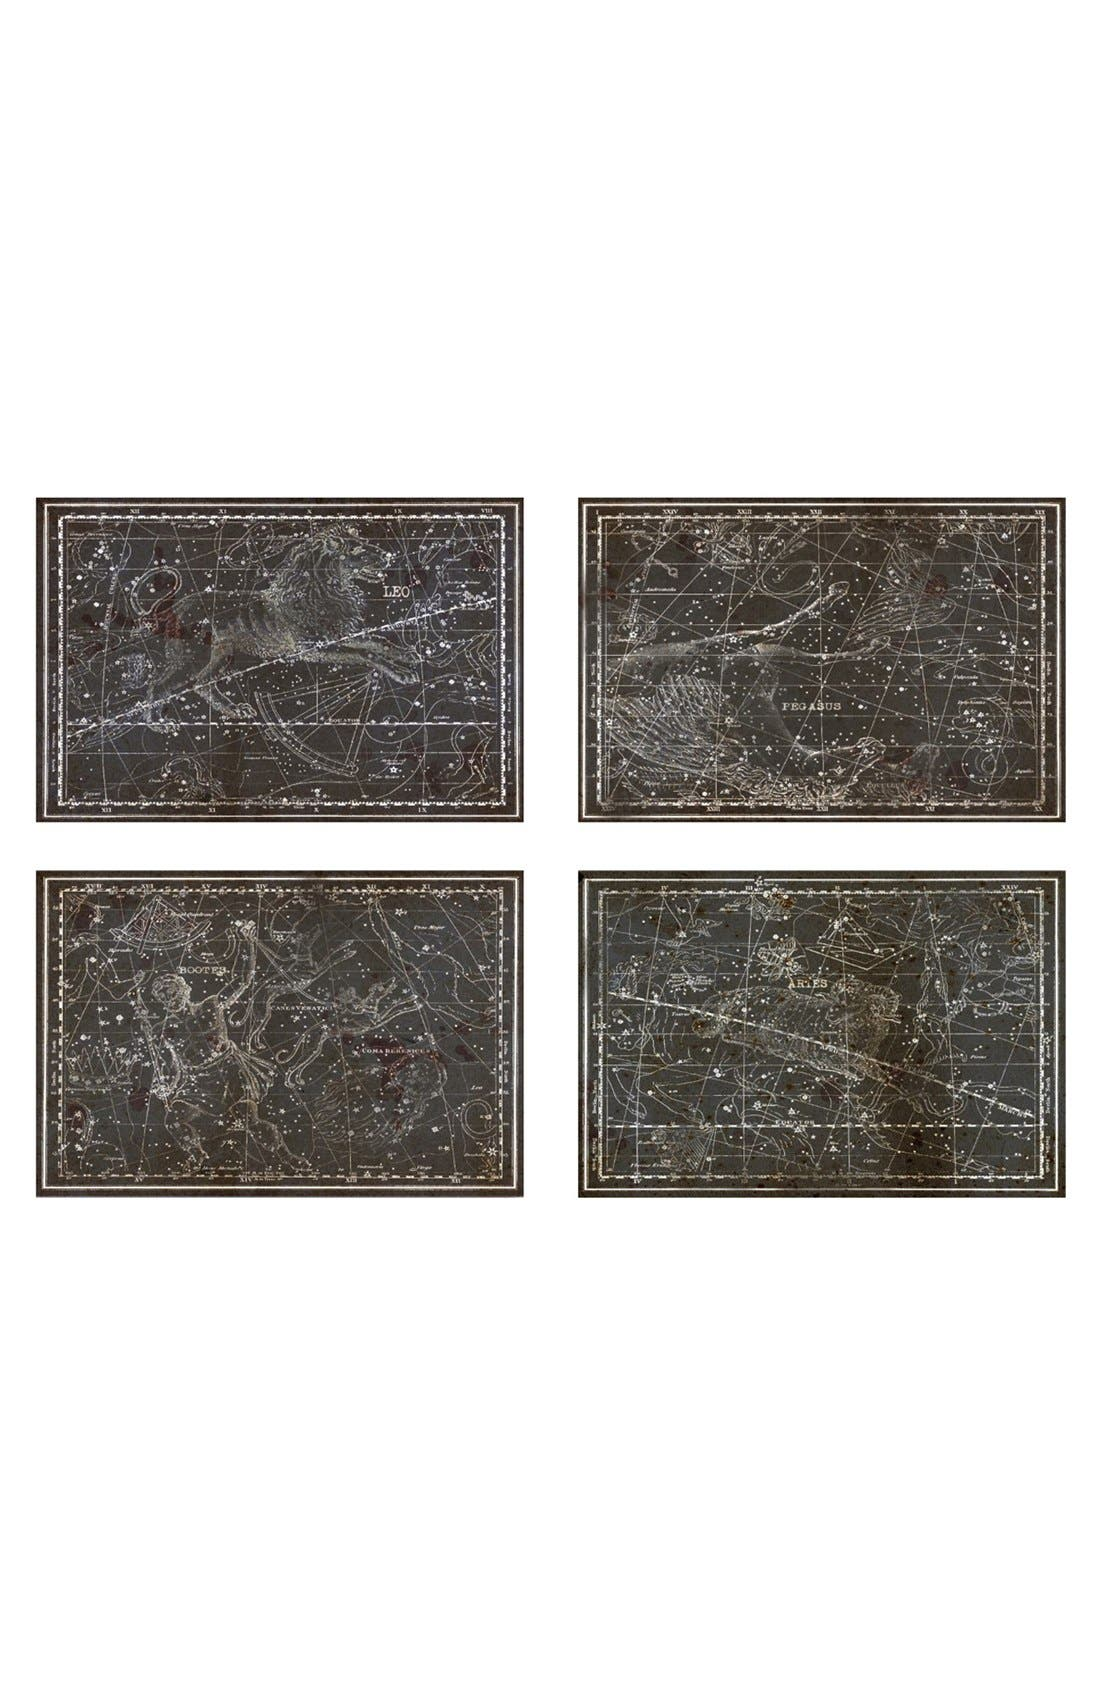 OLIVER GAL 'Celestial Map XVI Century' Canvas Prints